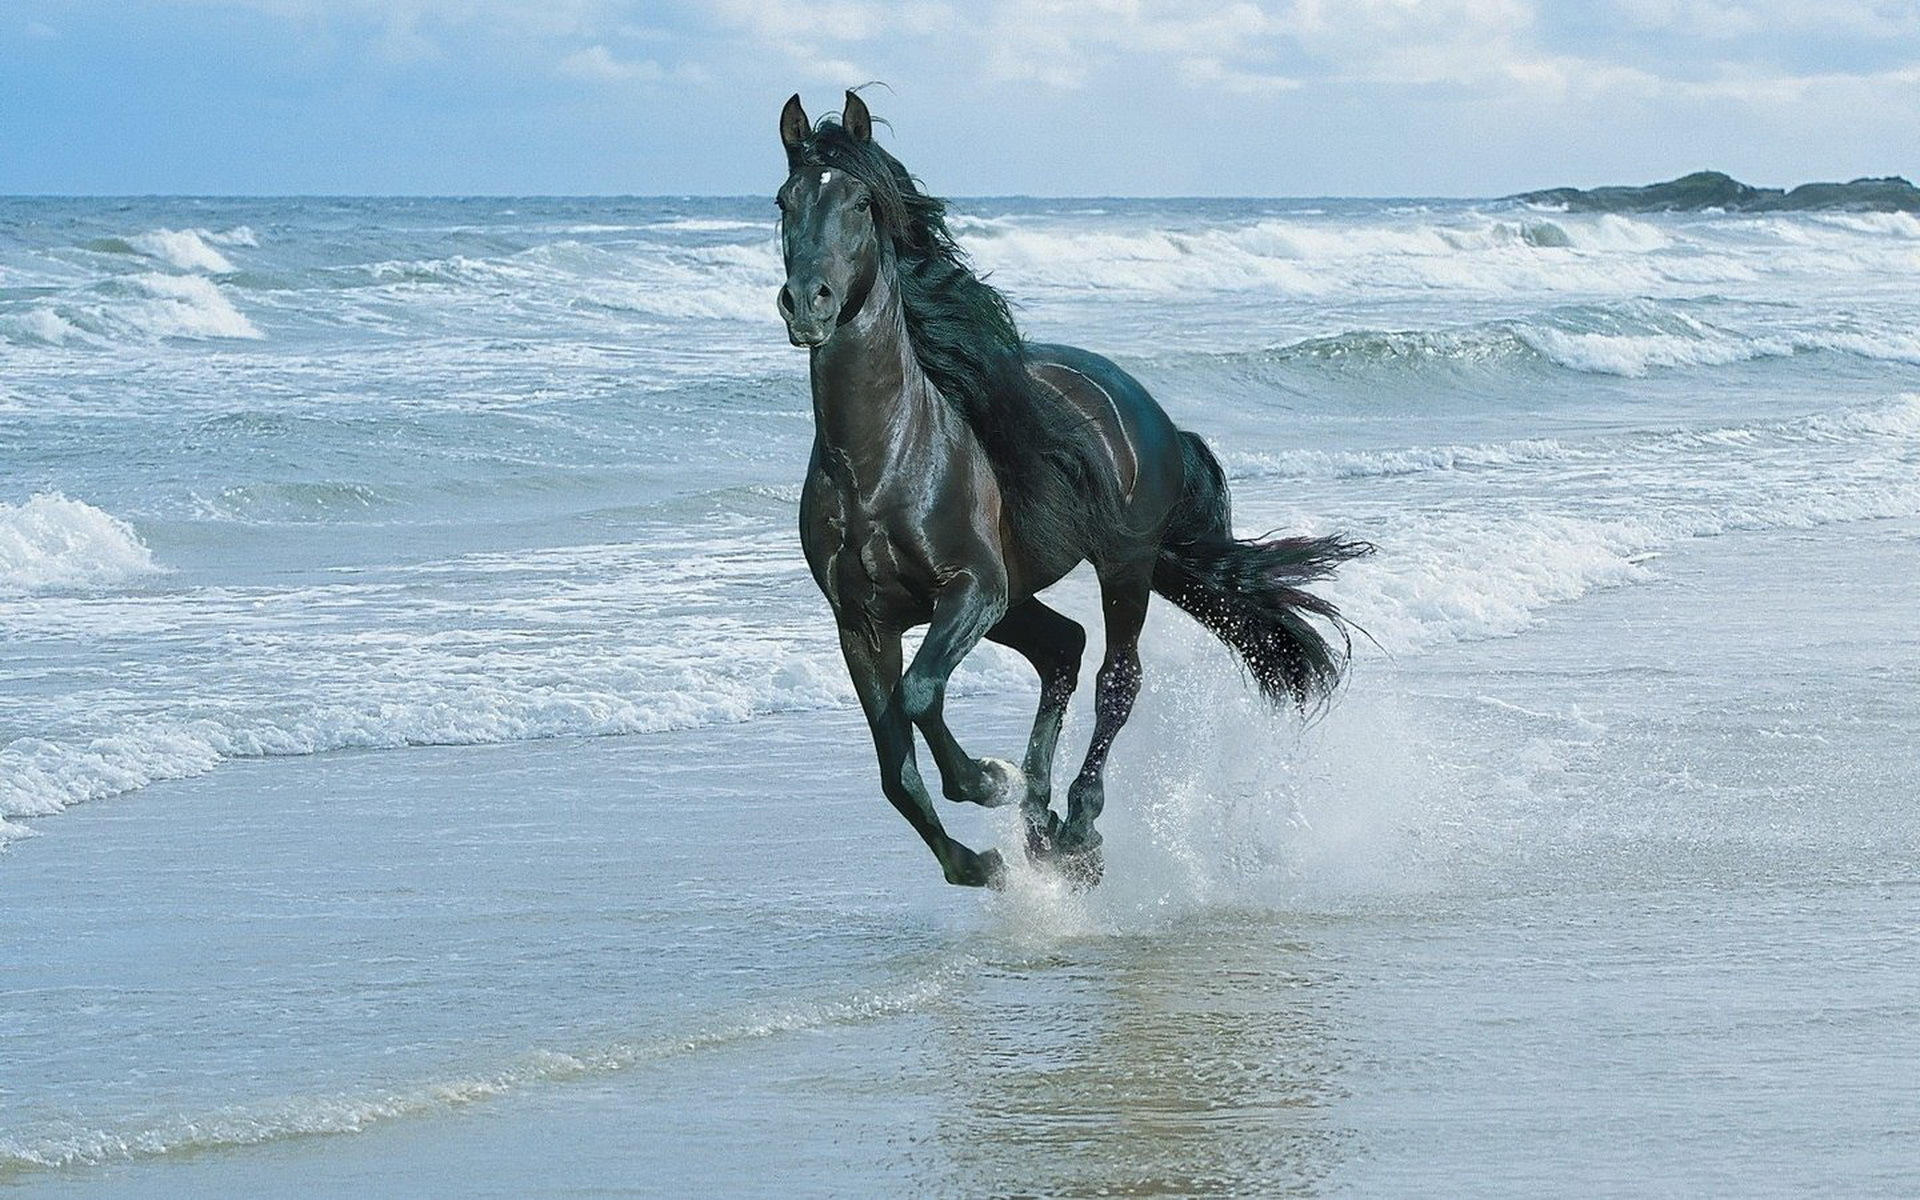 download wallpaper: paard op het strand wallpaper